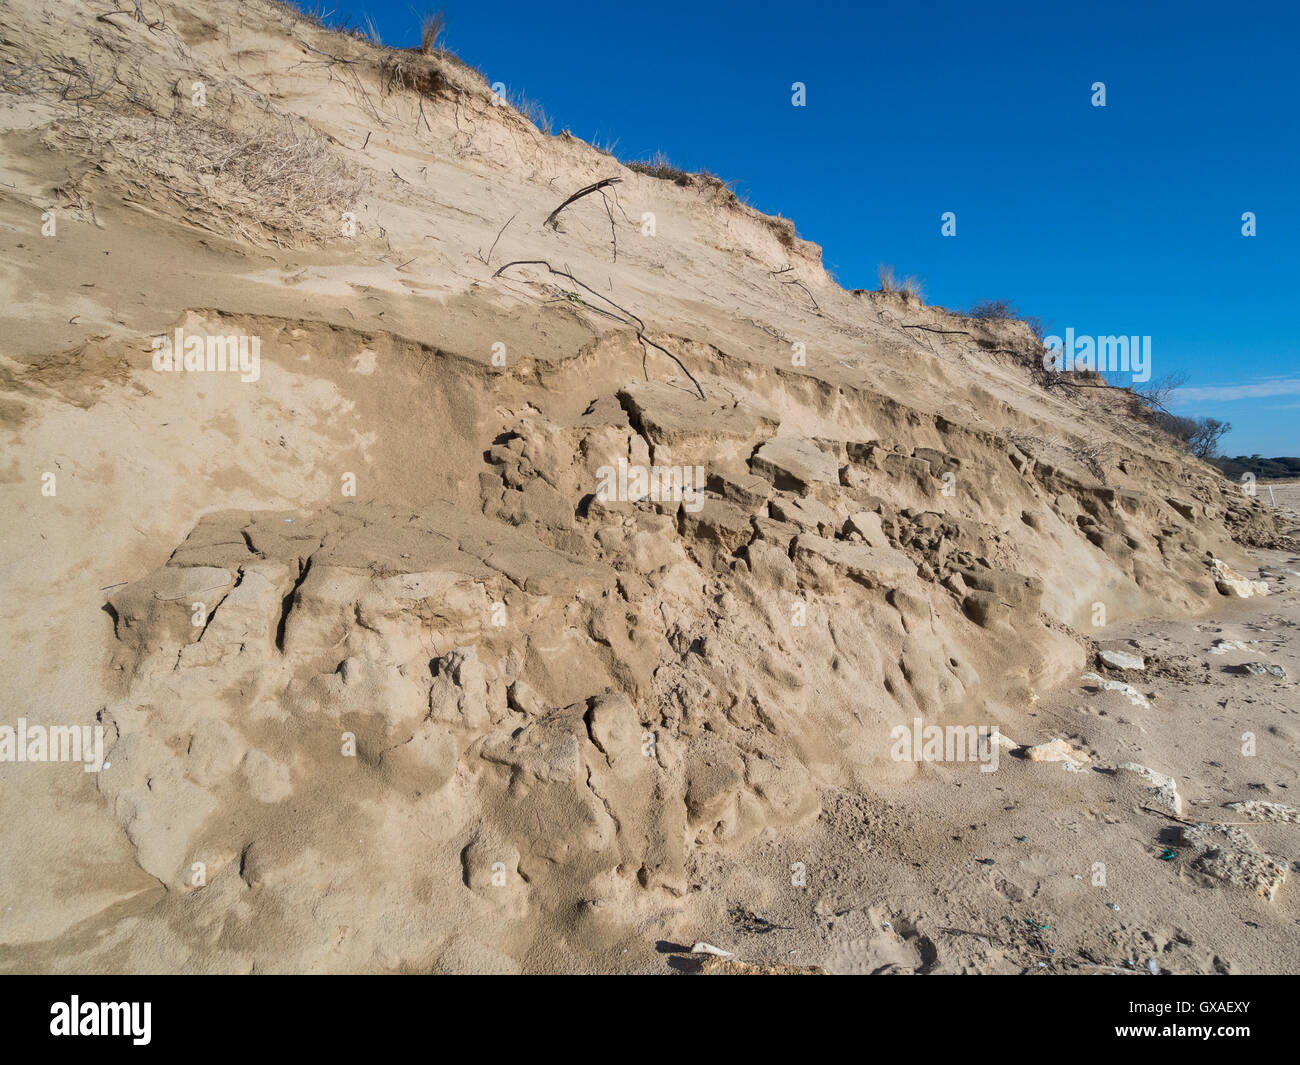 Collapse of the sand dune. - Stock Image